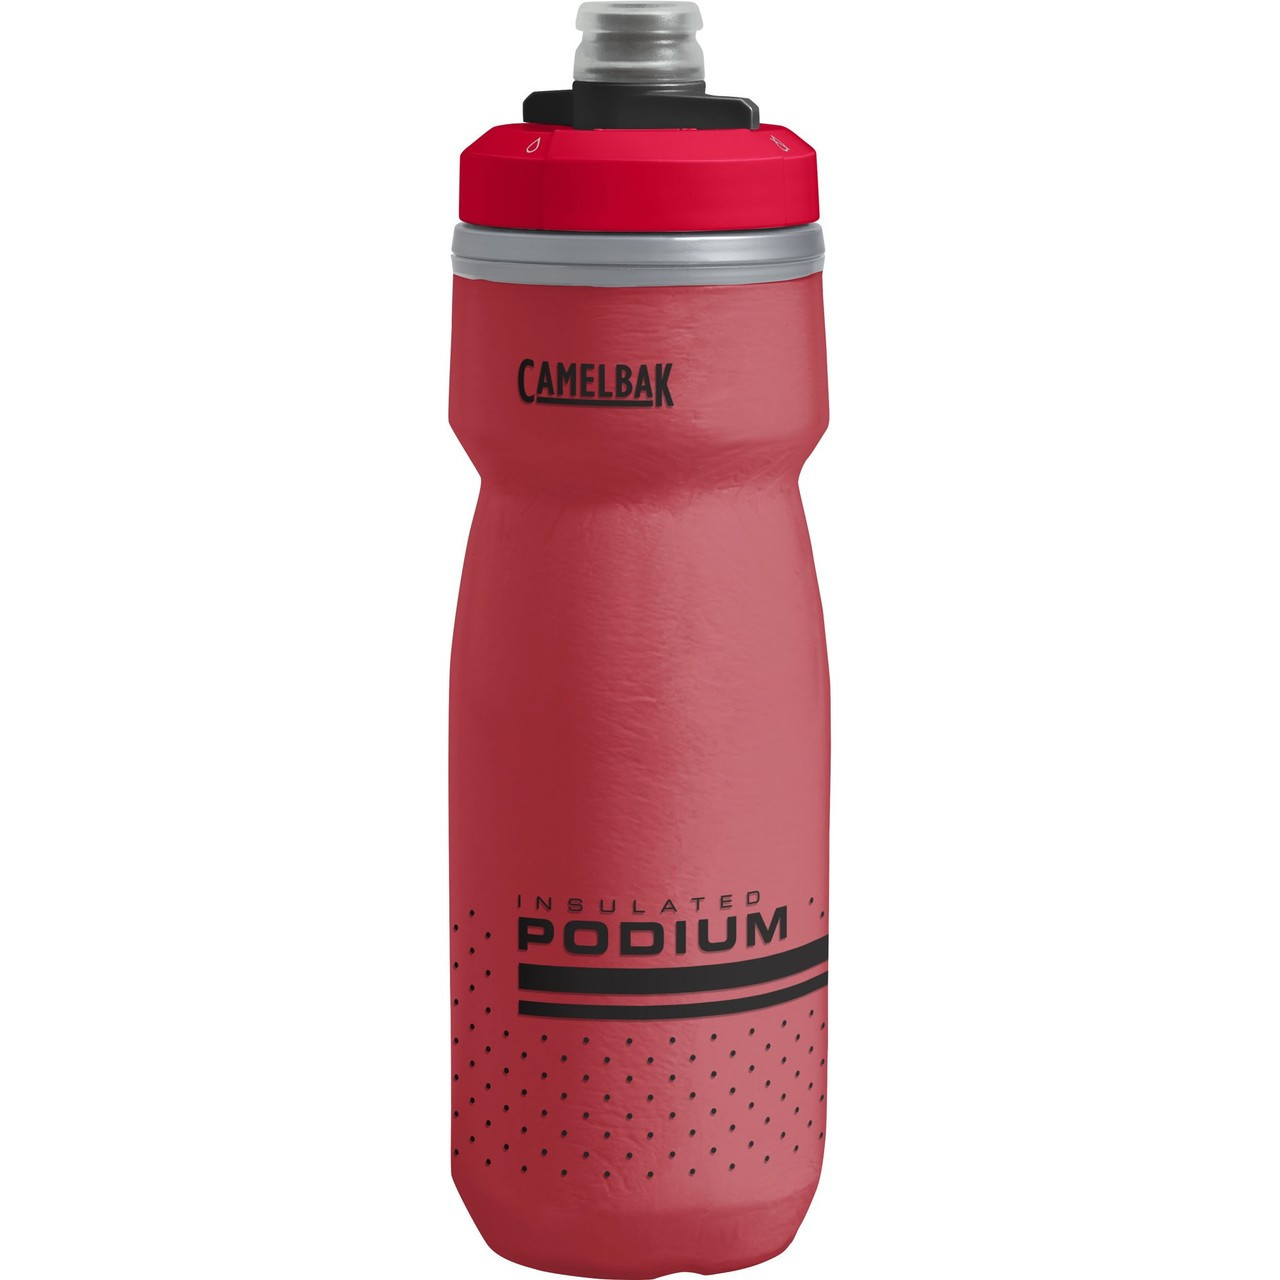 Best Water Bottles 2020.Camelbak Podium Chill 21 Oz Insulated Water Bottle 2020